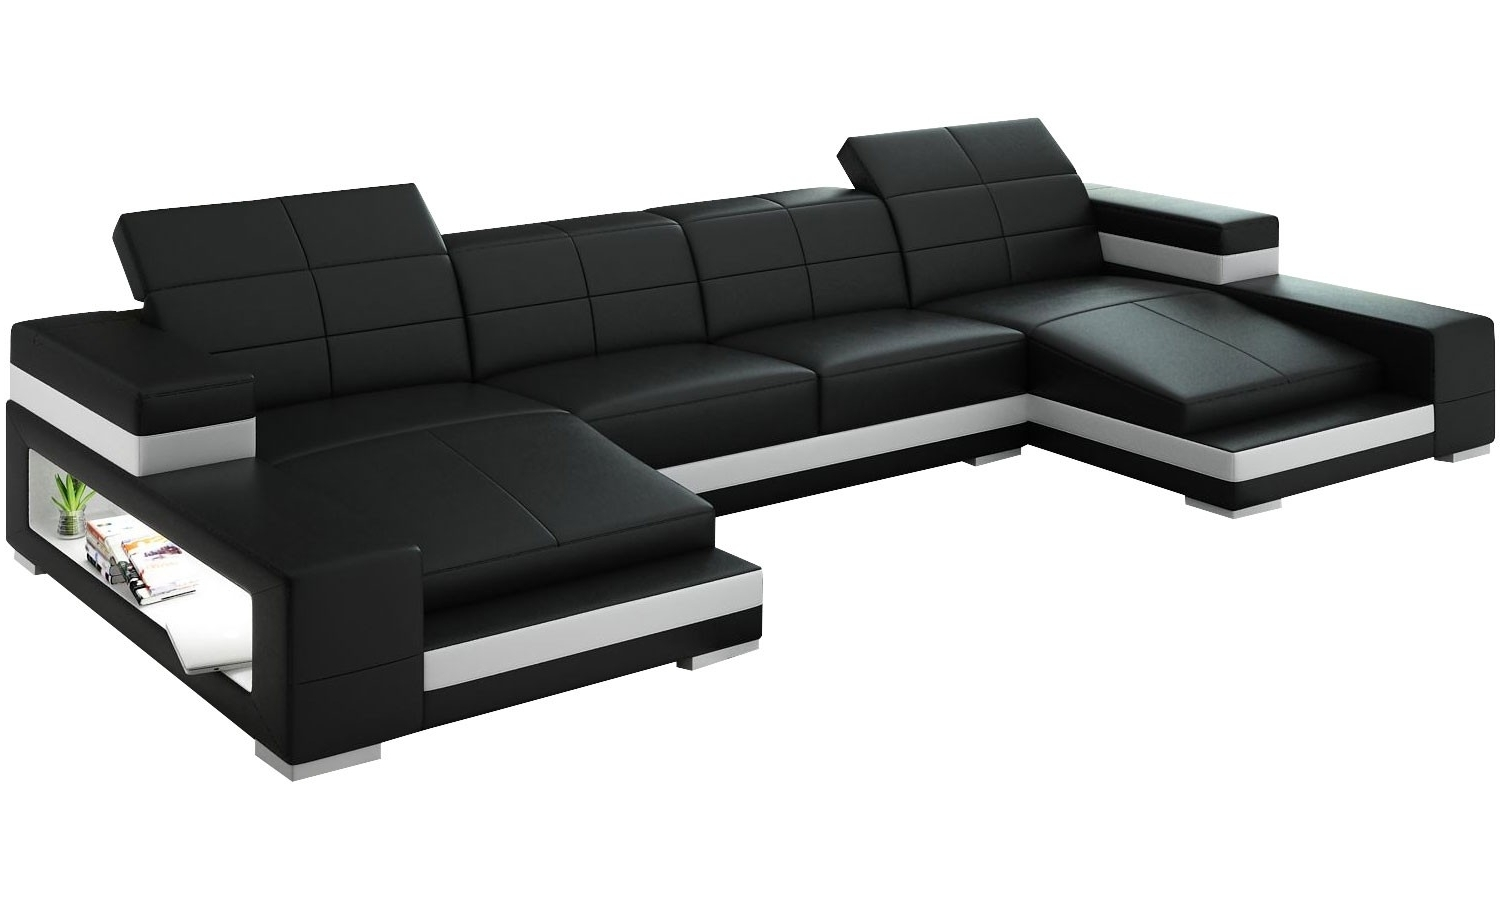 Double Leather Chaise Sectional With Ergonomic Back And Storage In With Regard To Preferred Dual Chaise Sectionals (View 13 of 15)